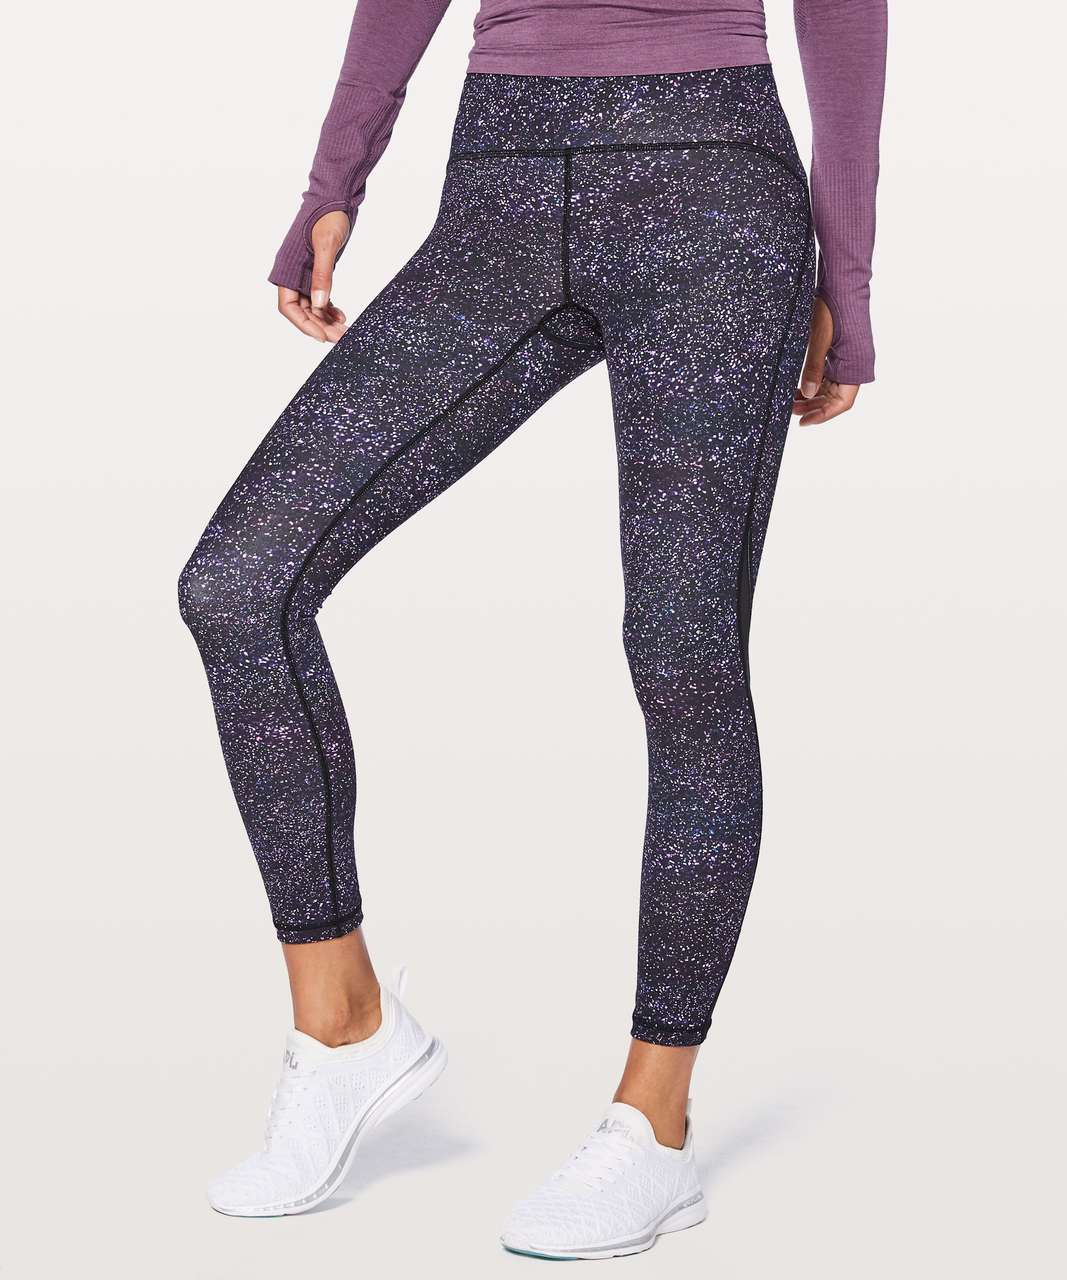 c3e3f9f0d8610 Lululemon Train Times 7/8 Pant 25